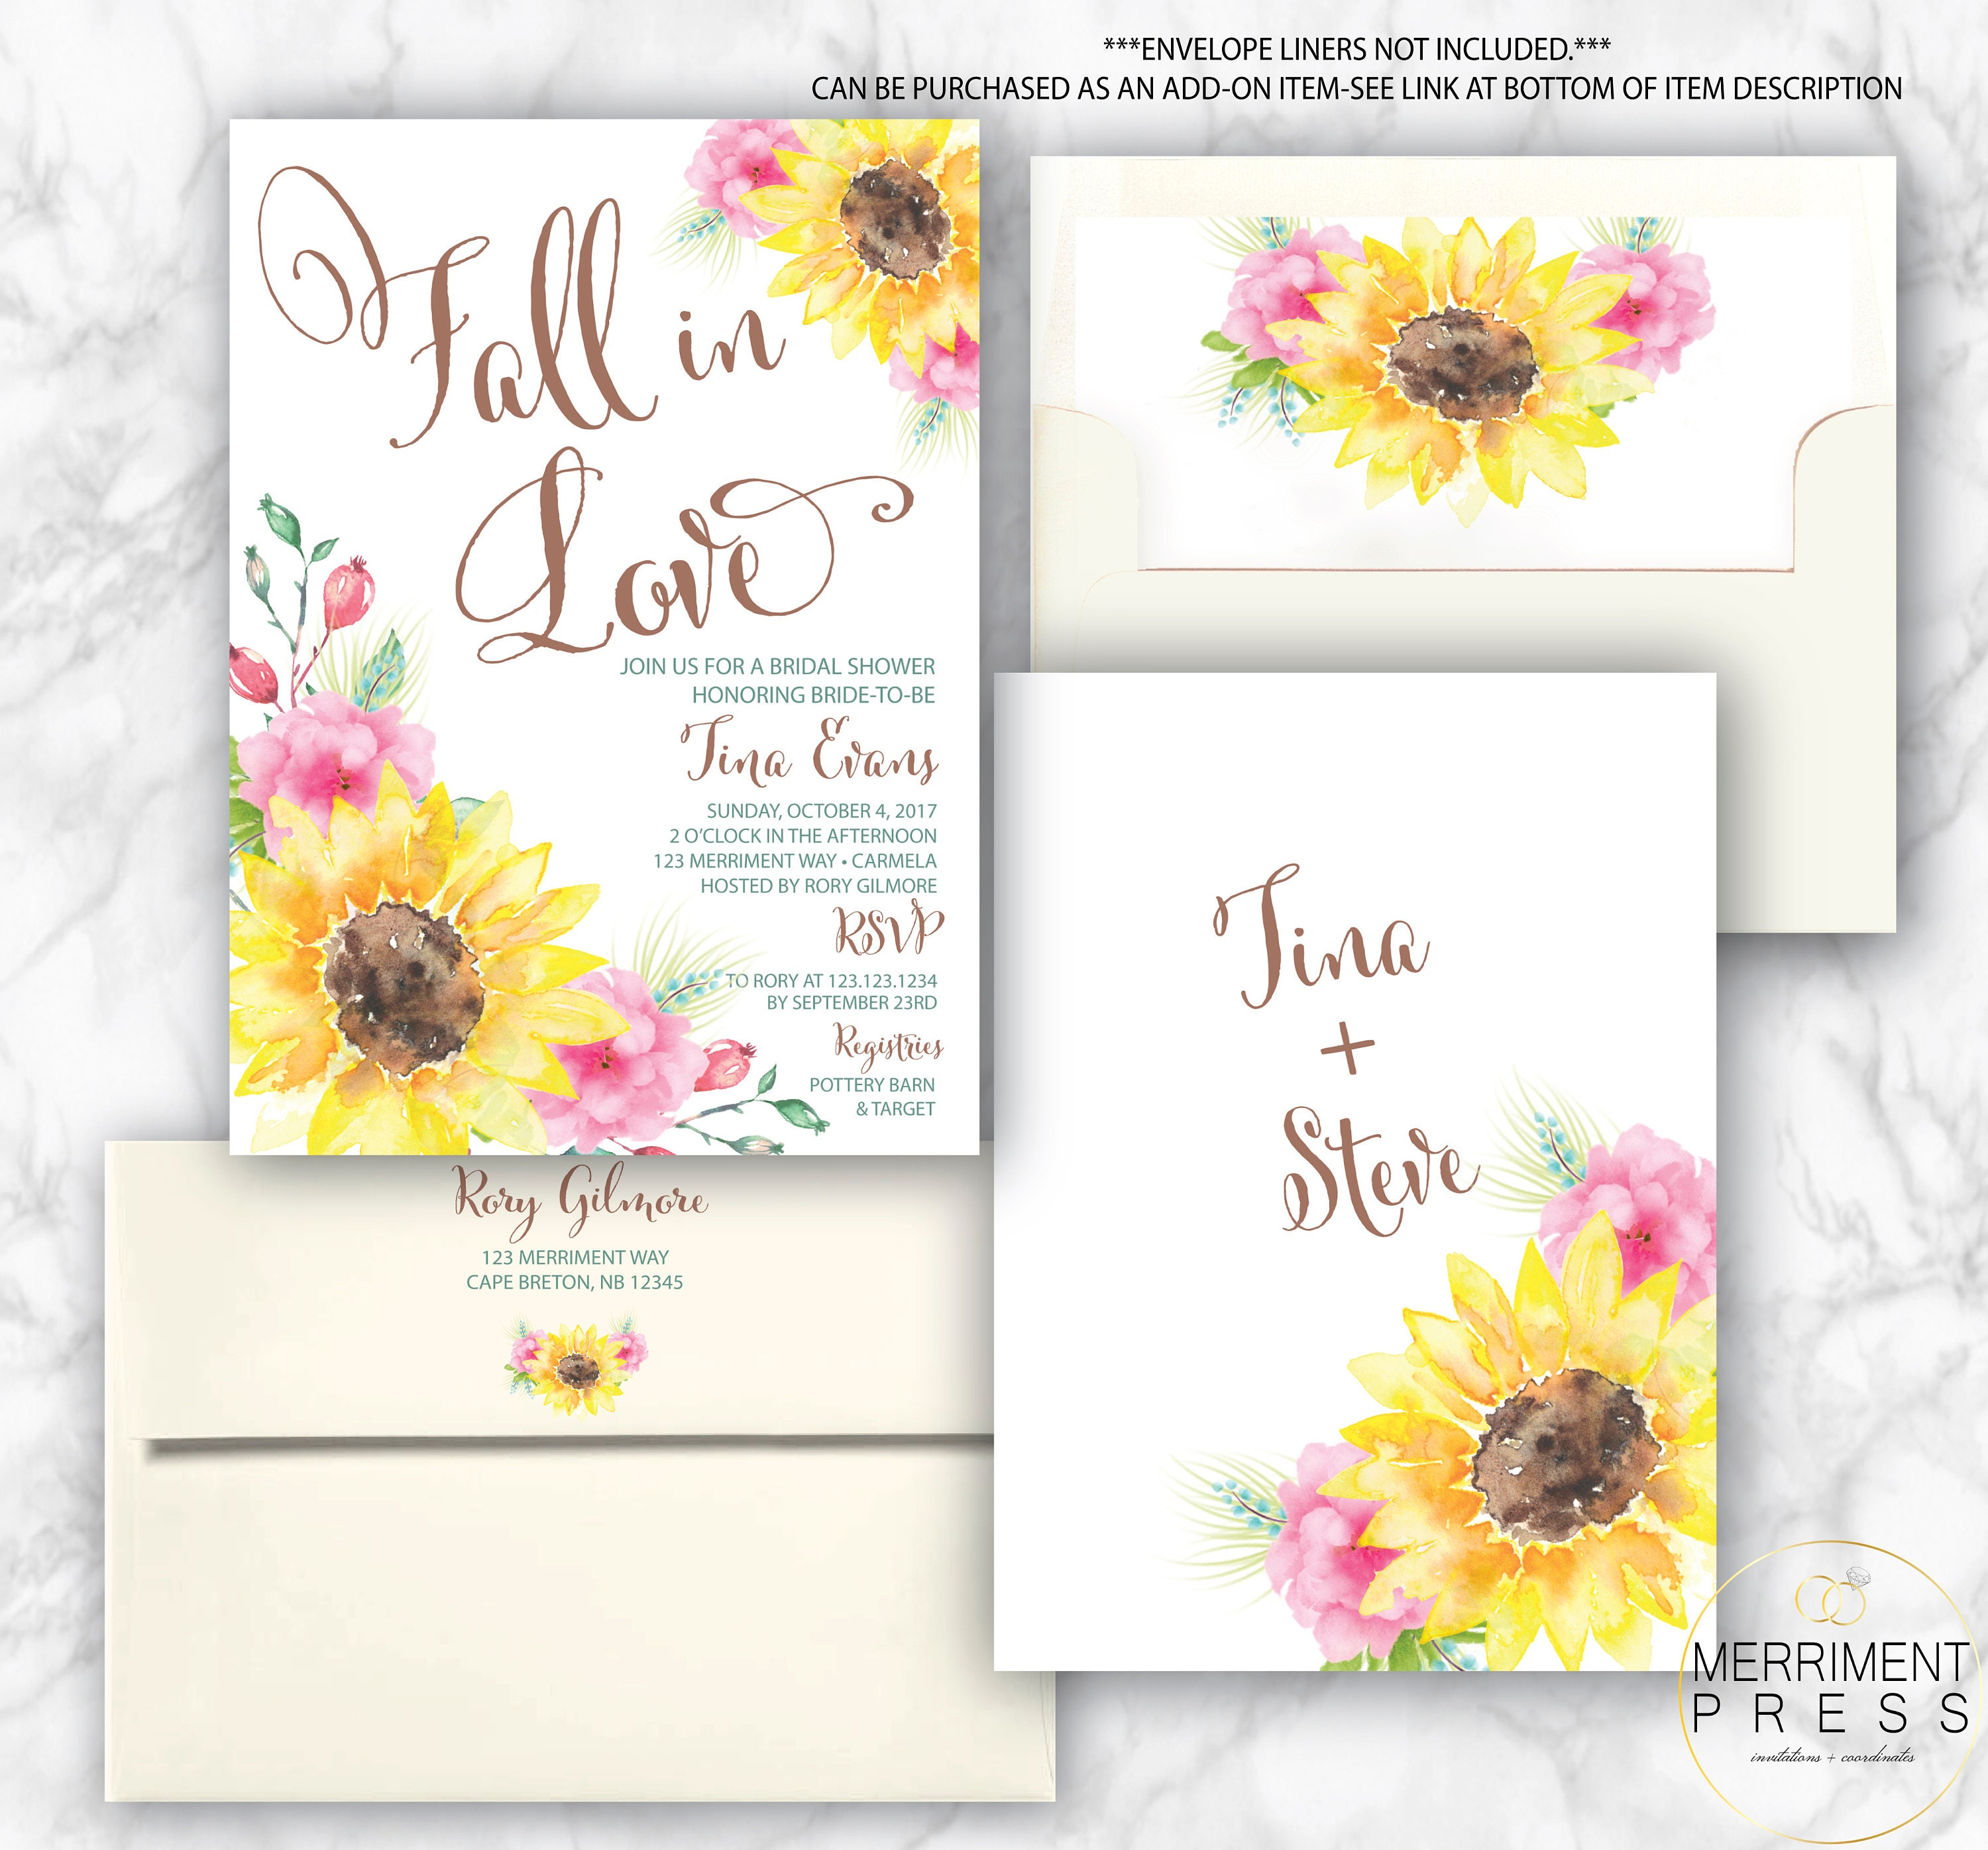 Tuscan bridal shower invitations images invitation templates free tuscan bridal shower invitations choice image invitation templates rustic sunflower bridal shower invitation fall in love filmwisefo